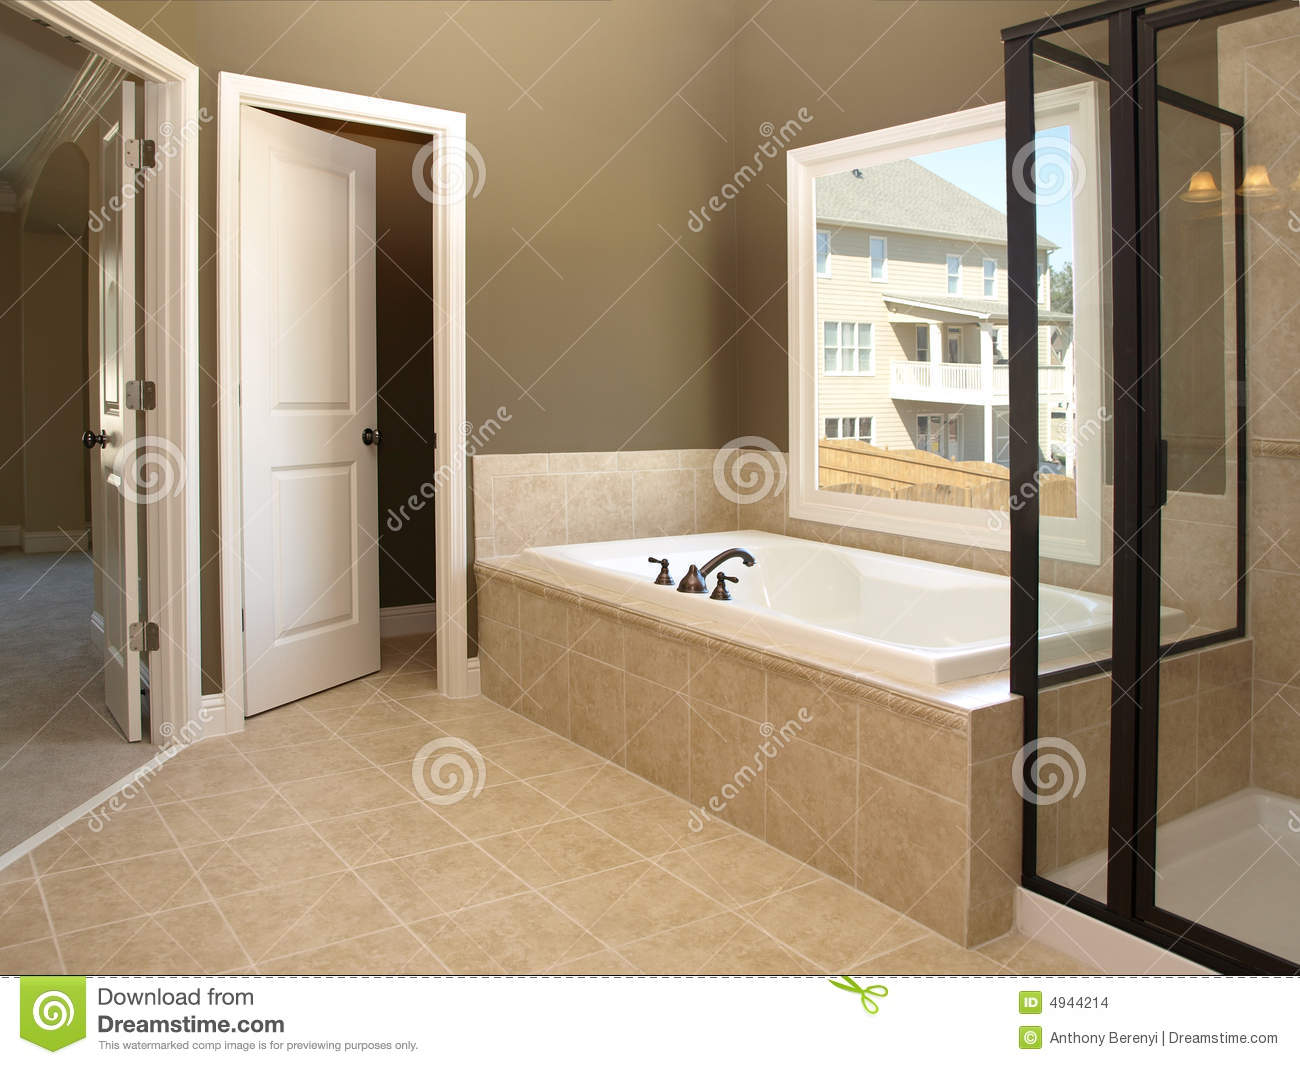 Baño De Tina Con Sal:Tub and Bathroom Window